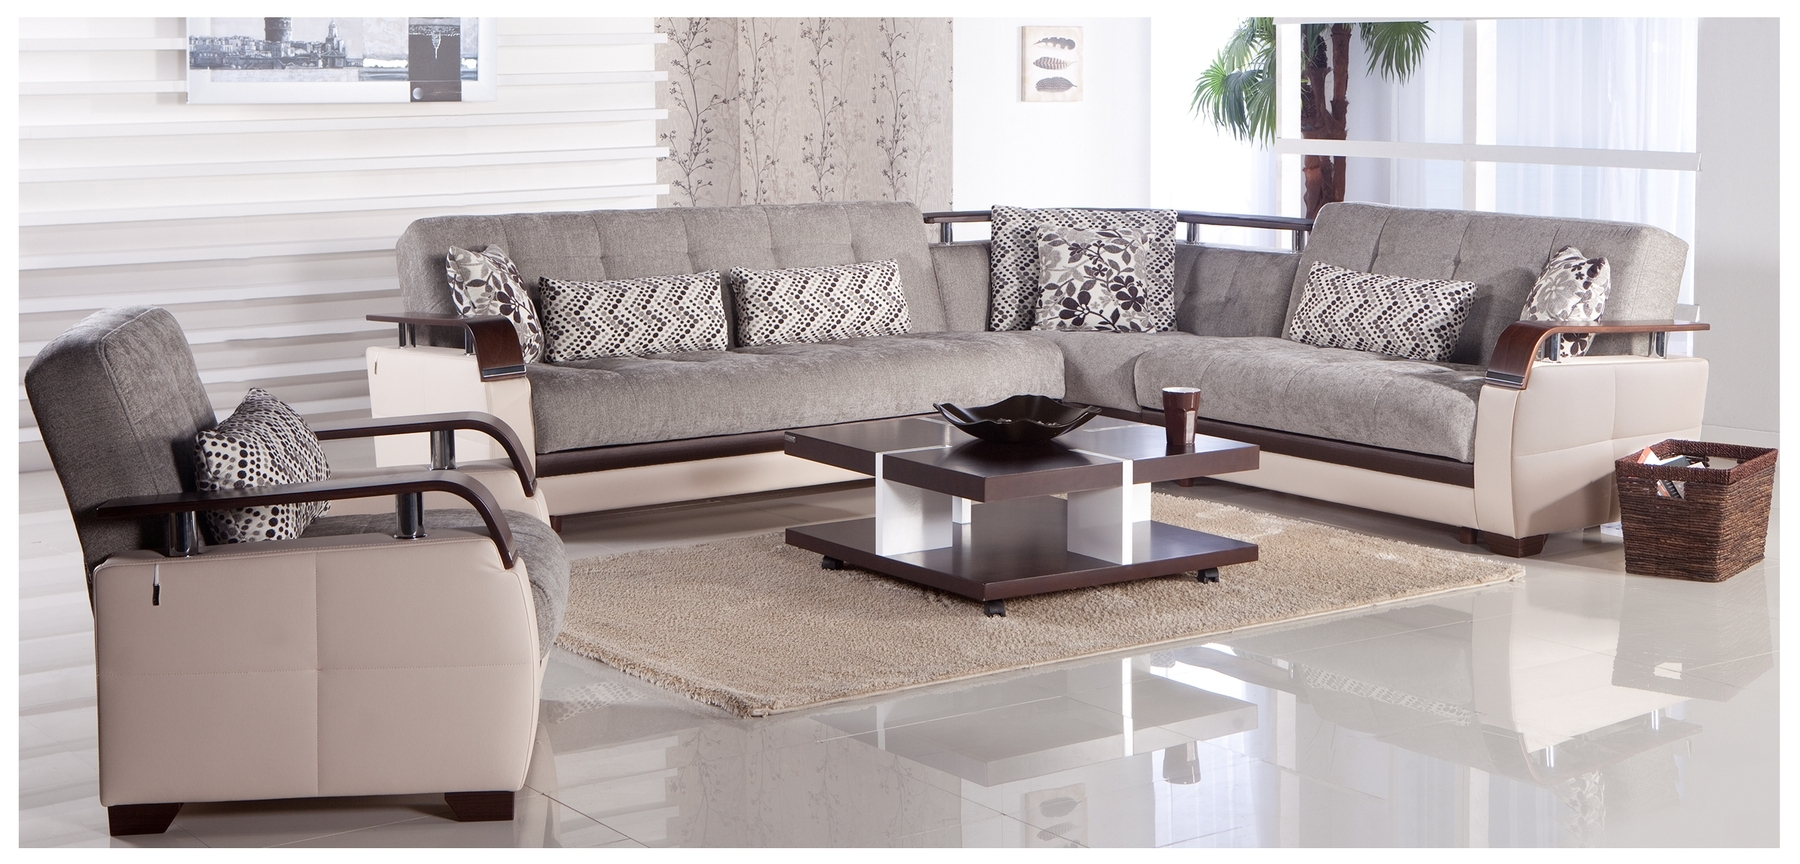 Best And Newest Modern Microfiber Sectional Sofas For Contemporary Microfiber Sectional Sofa (View 1 of 20)